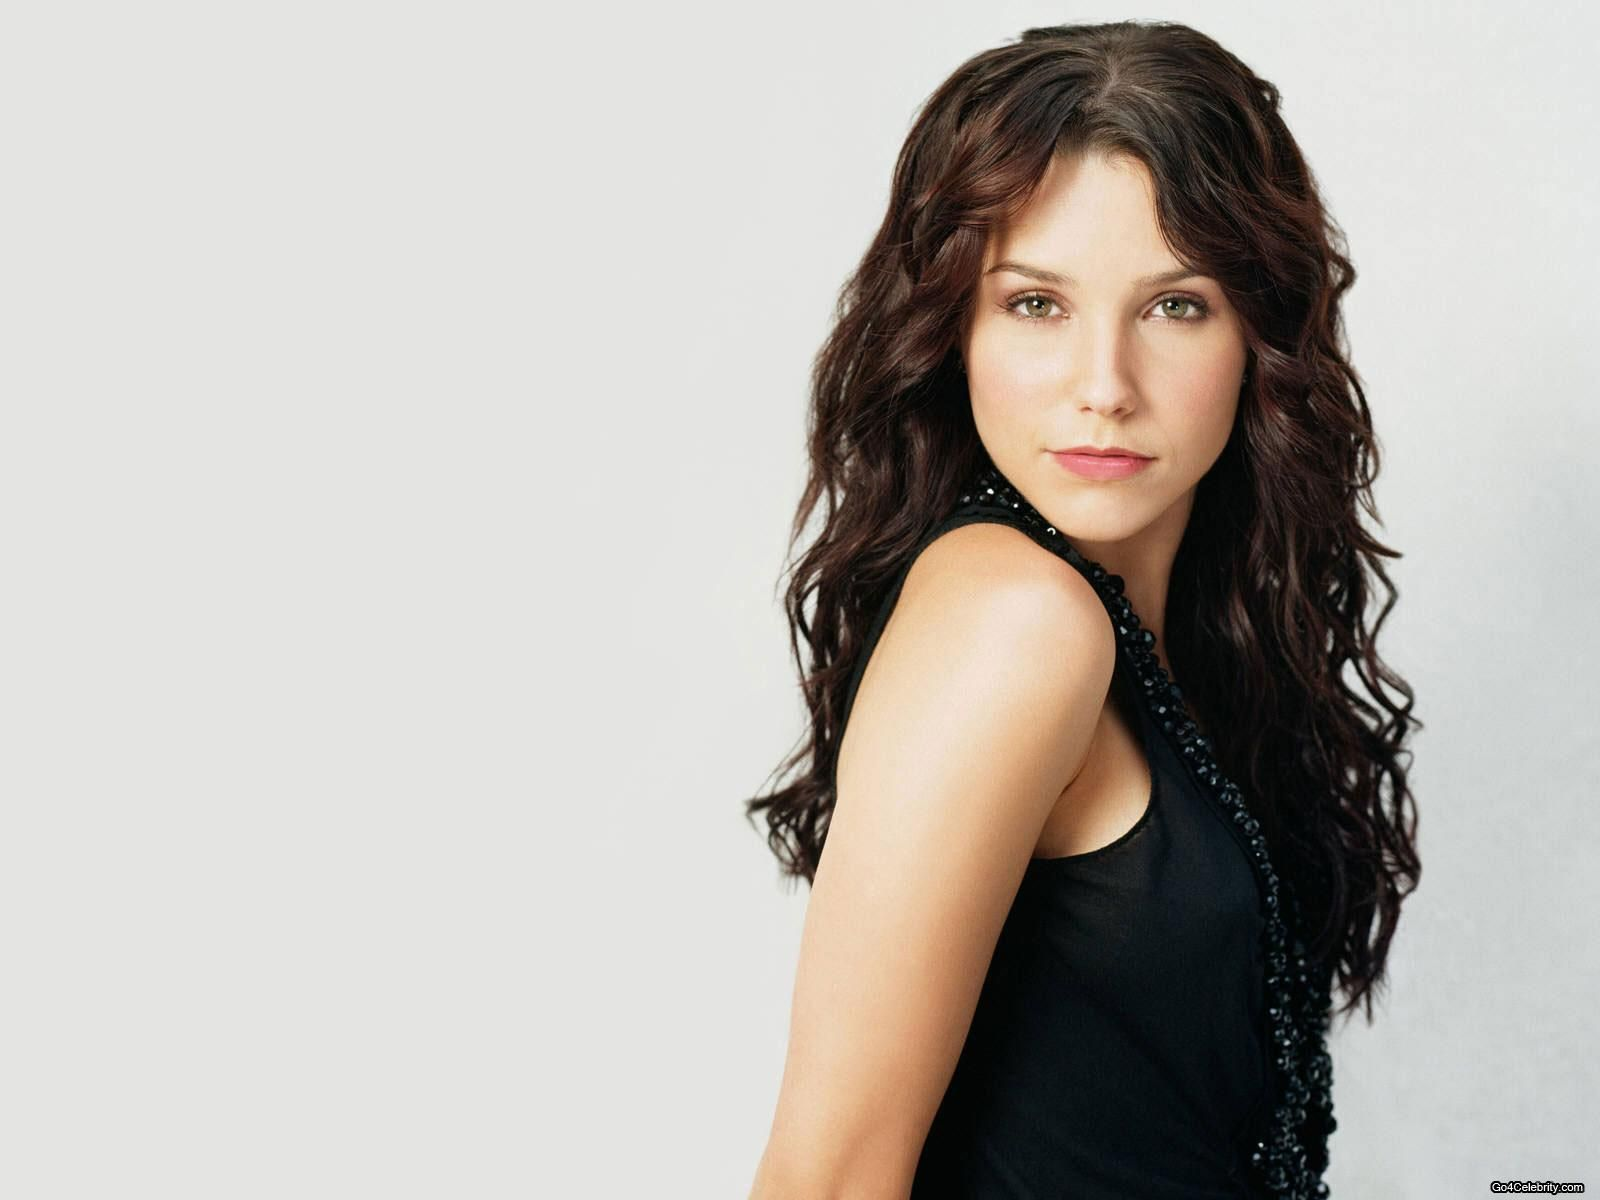 Sophia bush wallpapers high resolution and quality download d